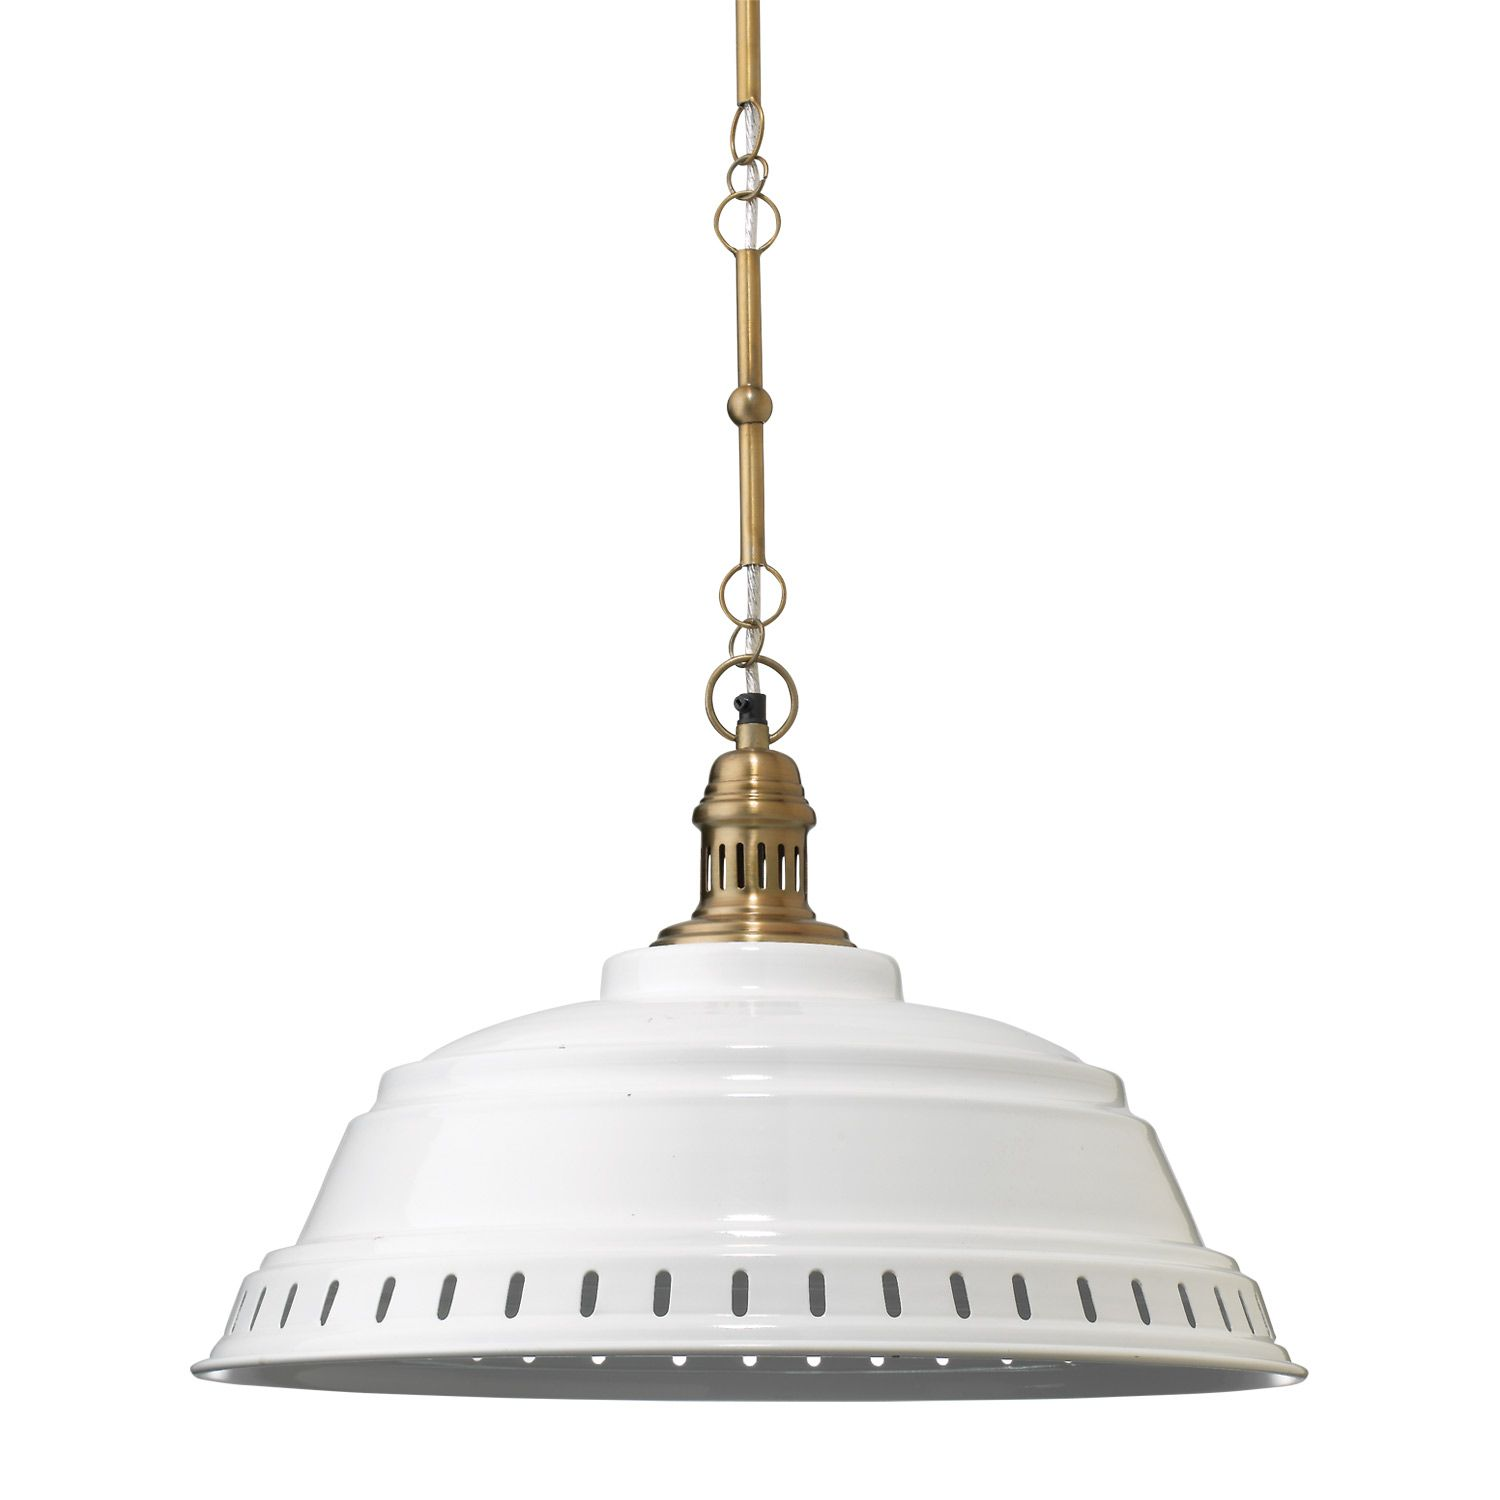 Jamie young reinvents classic barn lighting with the provisions jamie young reinvents classic barn lighting with the provisions pendant simple in design but rich aloadofball Image collections